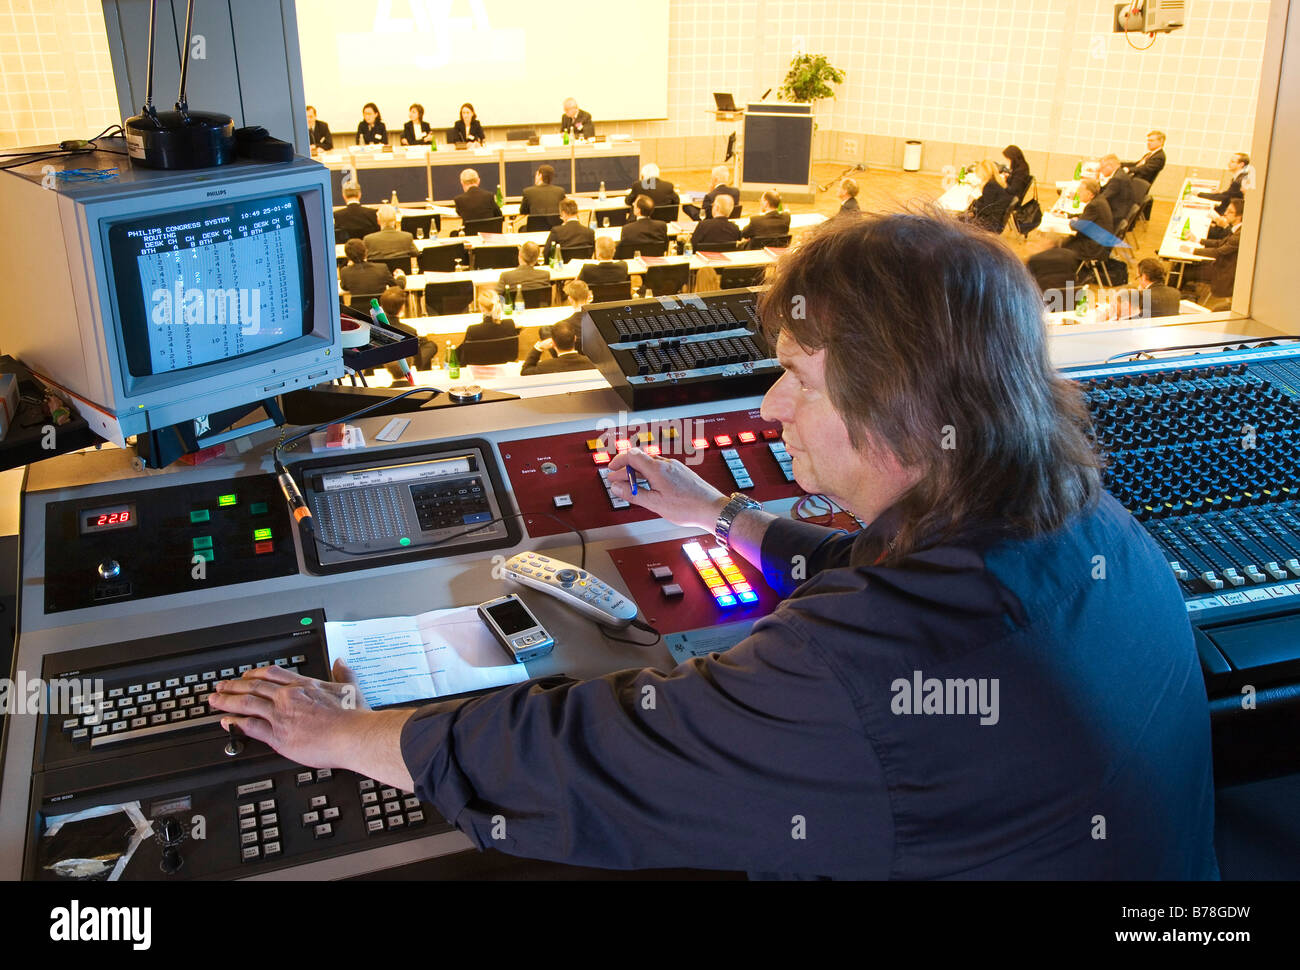 Sound and light director in the congress center of the Messe Schweiz in the sound and light control booth over a - Stock Image